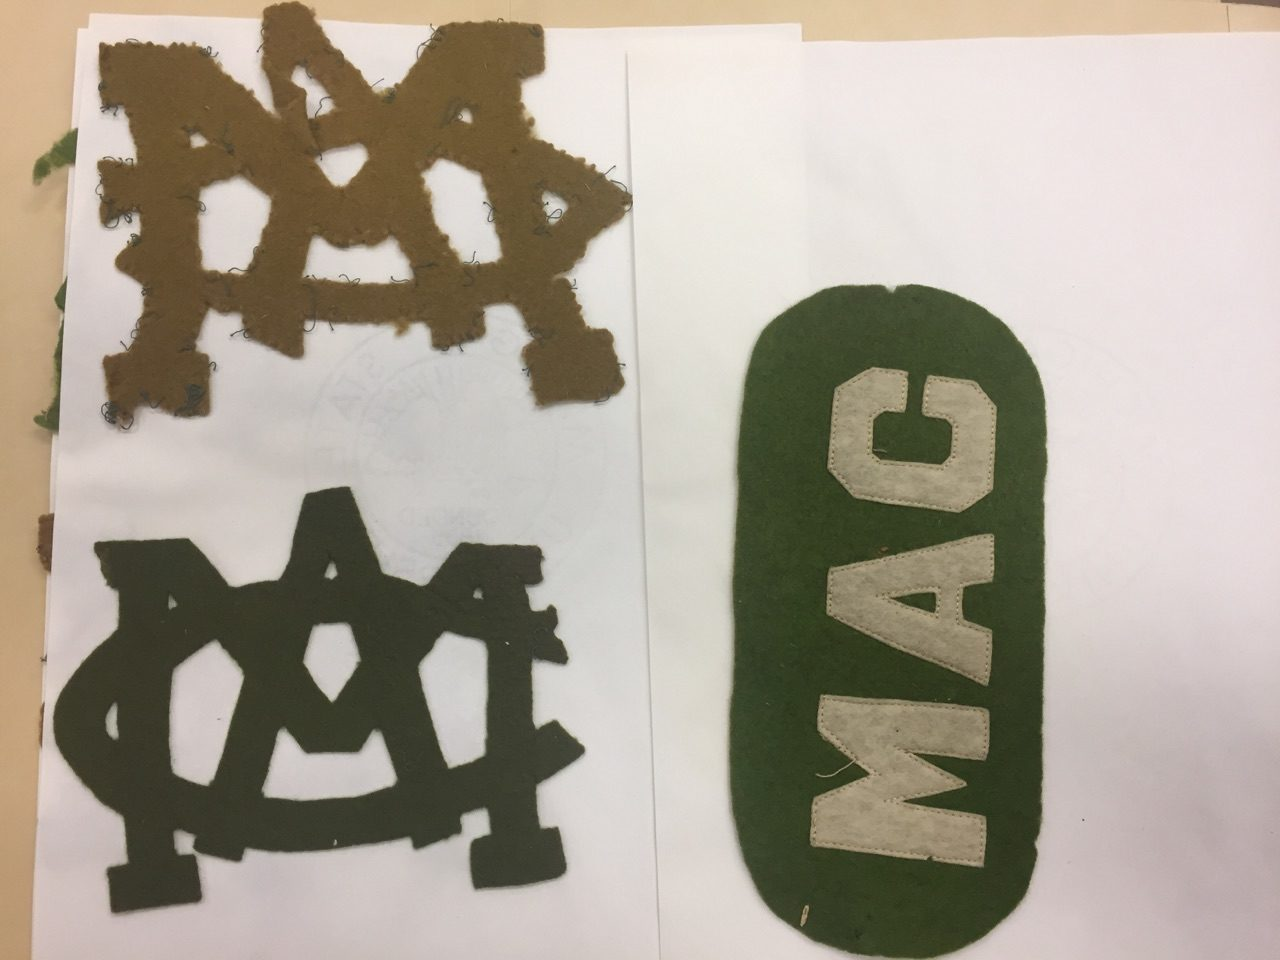 How to scrapbook on mac - Felt Mac Letters Sewn By Male Student Scrapbook 331 Image Courtesy Of